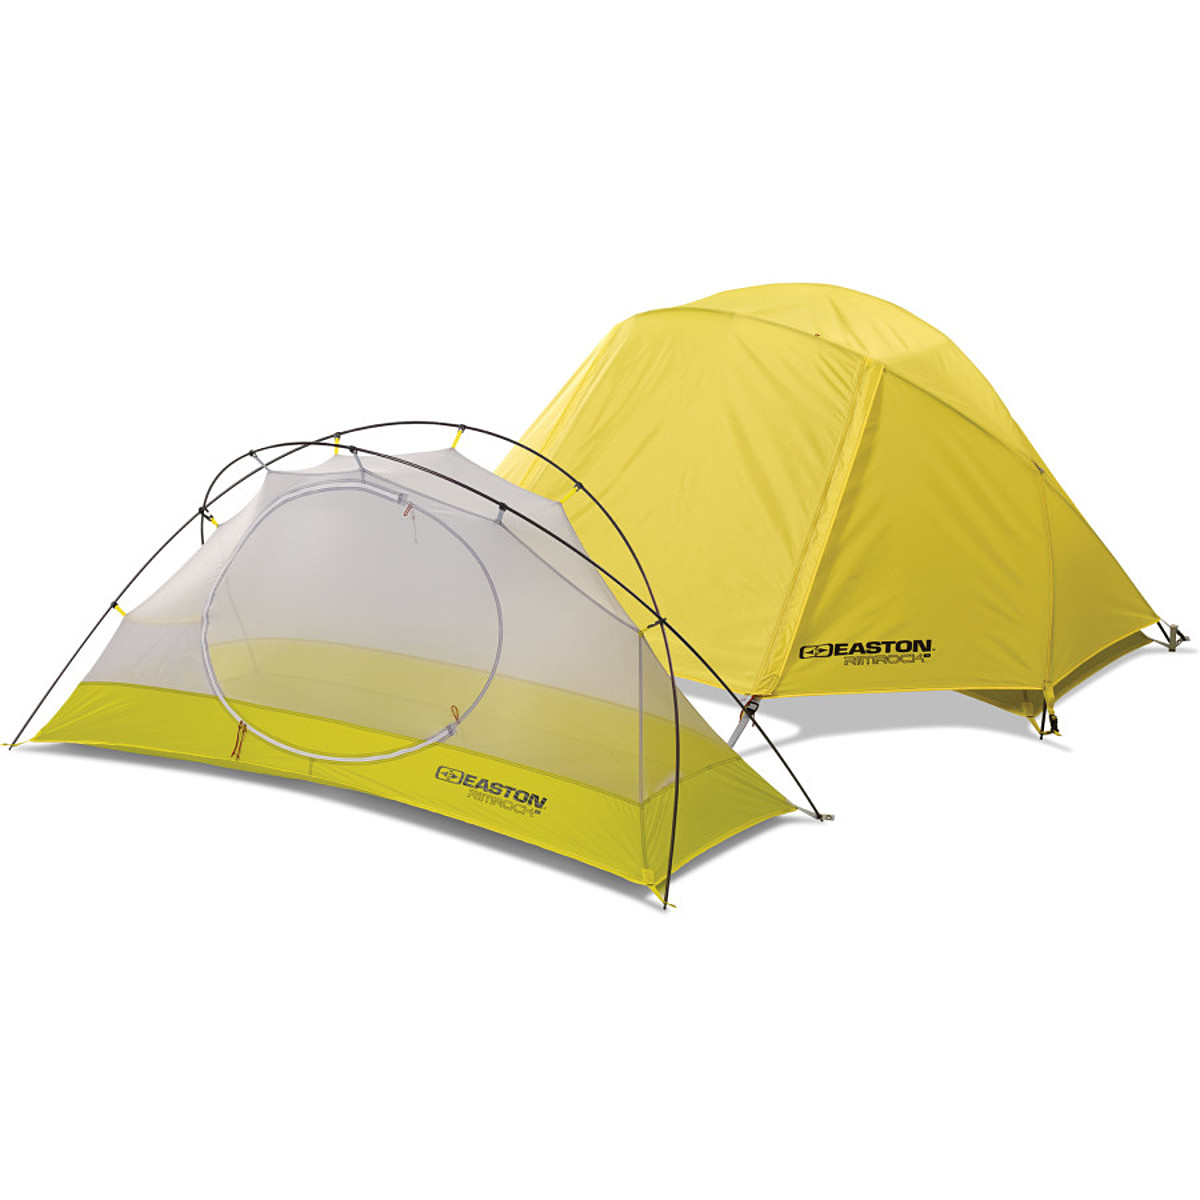 photo of a Easton hiking/camping product